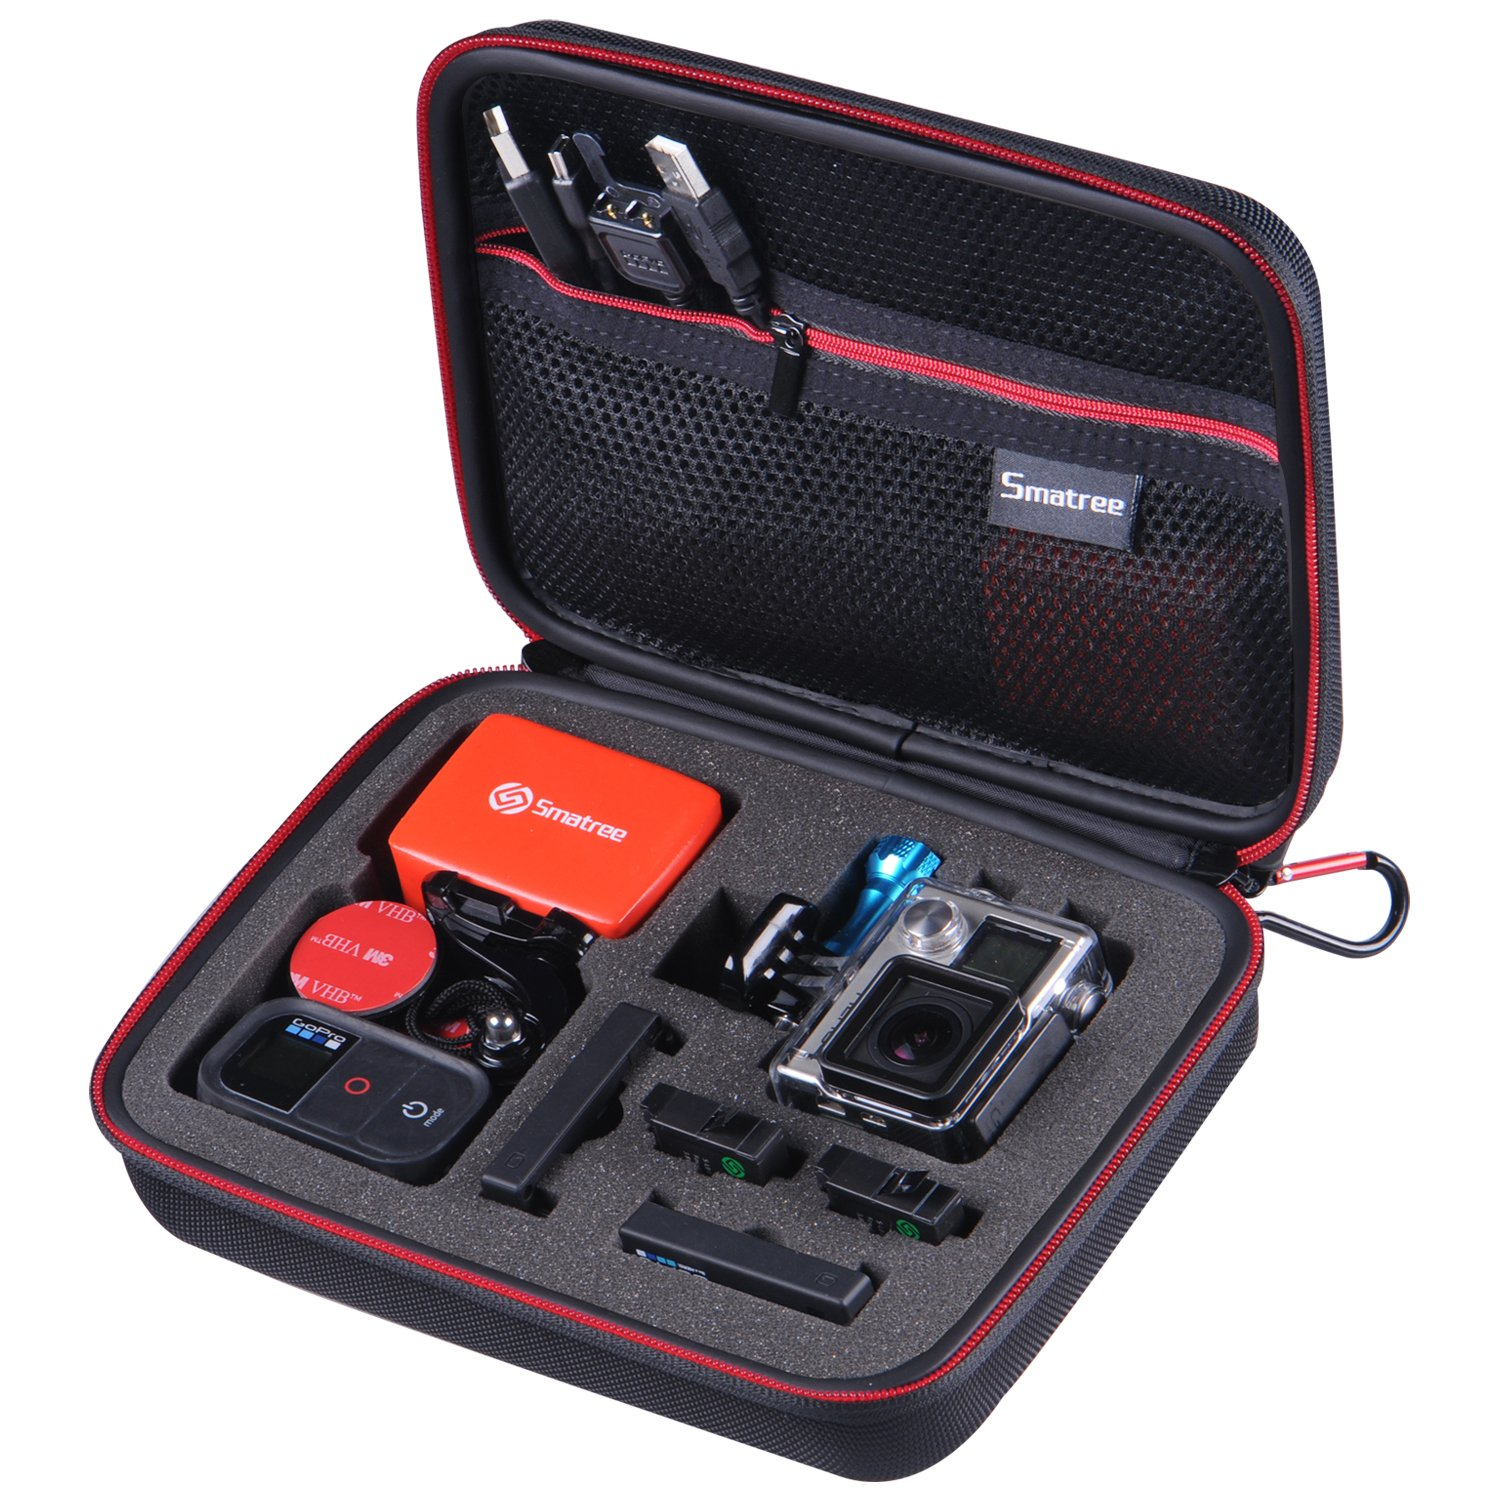 "Smatree SmaCase G160 - Medium Case for Gopro Hero 4/3+/3/2/1 and Accessories (8.6"" x6.7"" x2.7"") - Black & Red"